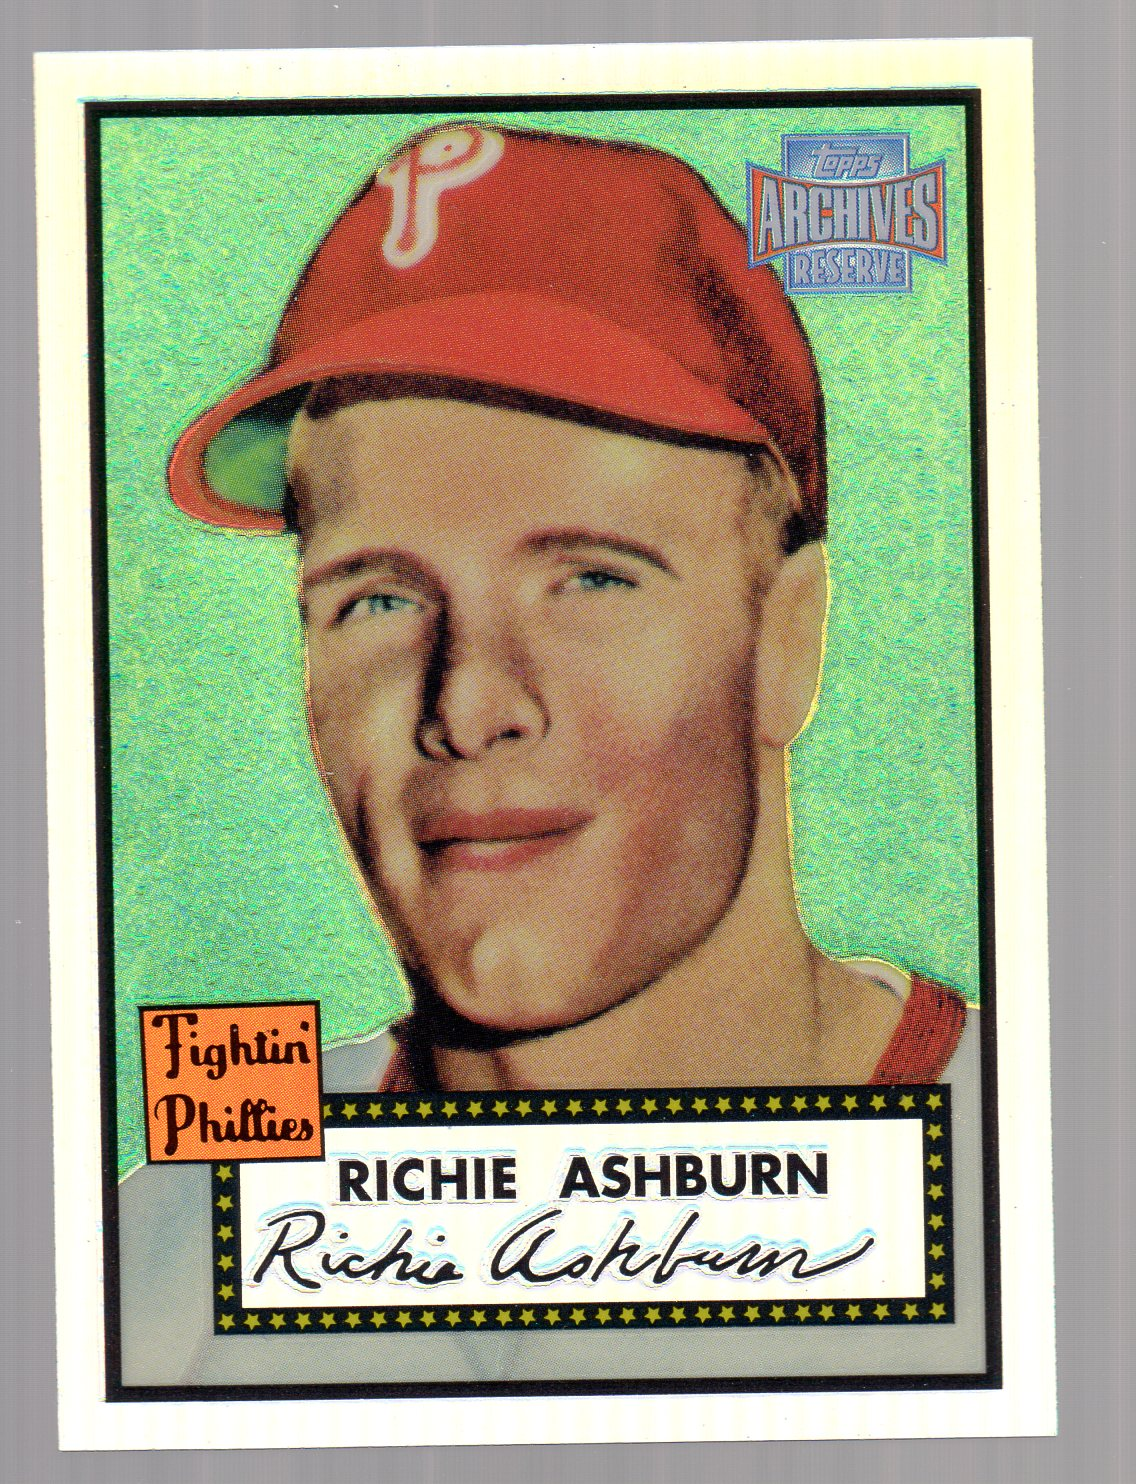 2001 Topps Archives Reserve #4 Richie Ashburn 52